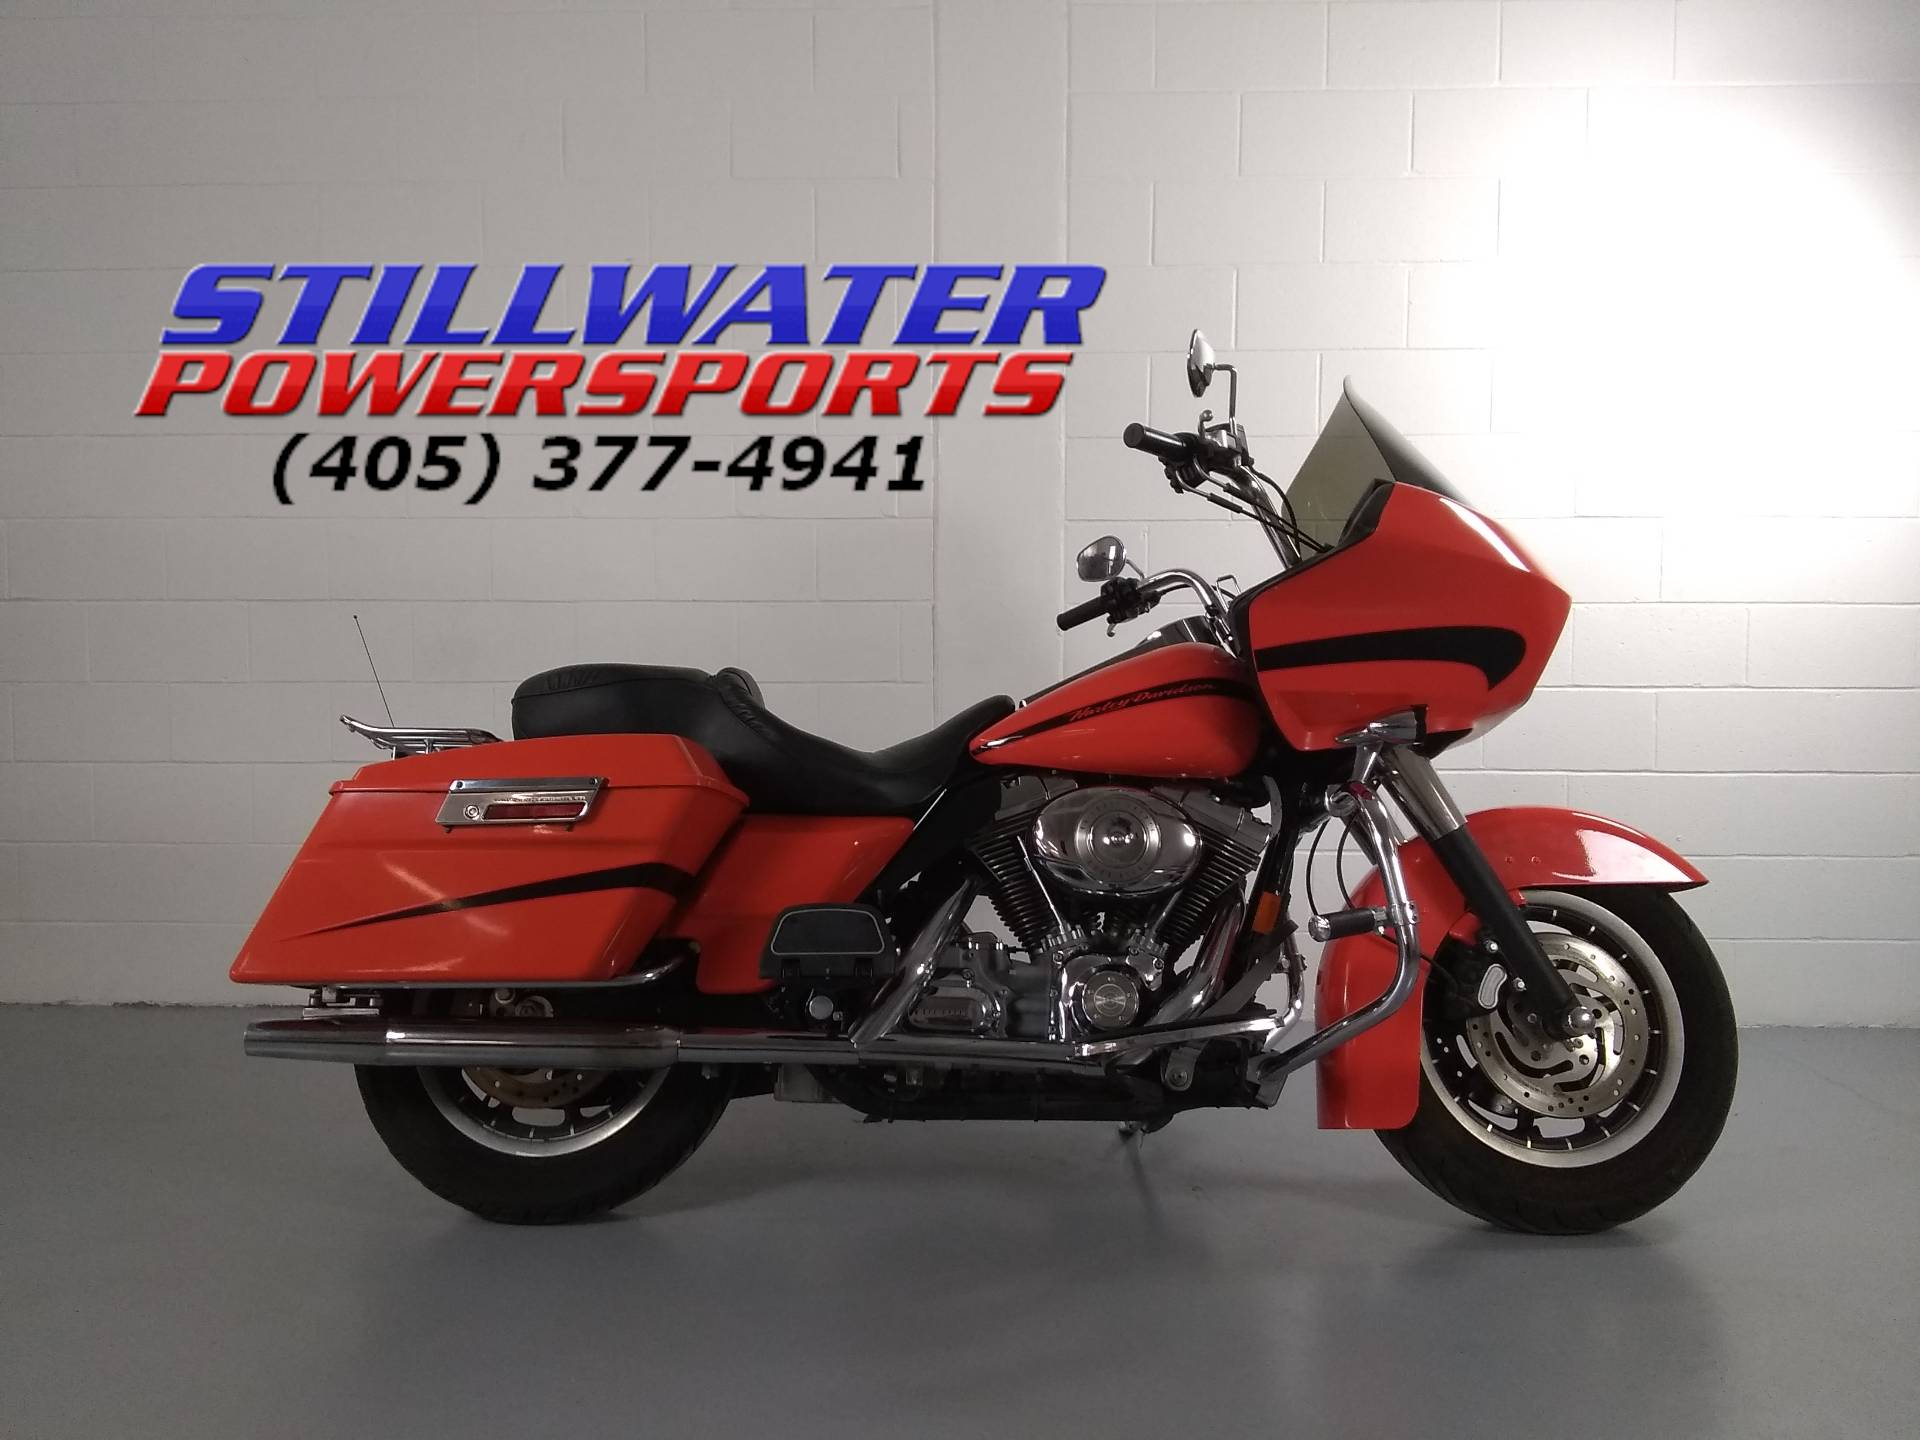 2007 Harley-Davidson Road Glide® in Stillwater, Oklahoma - Photo 1